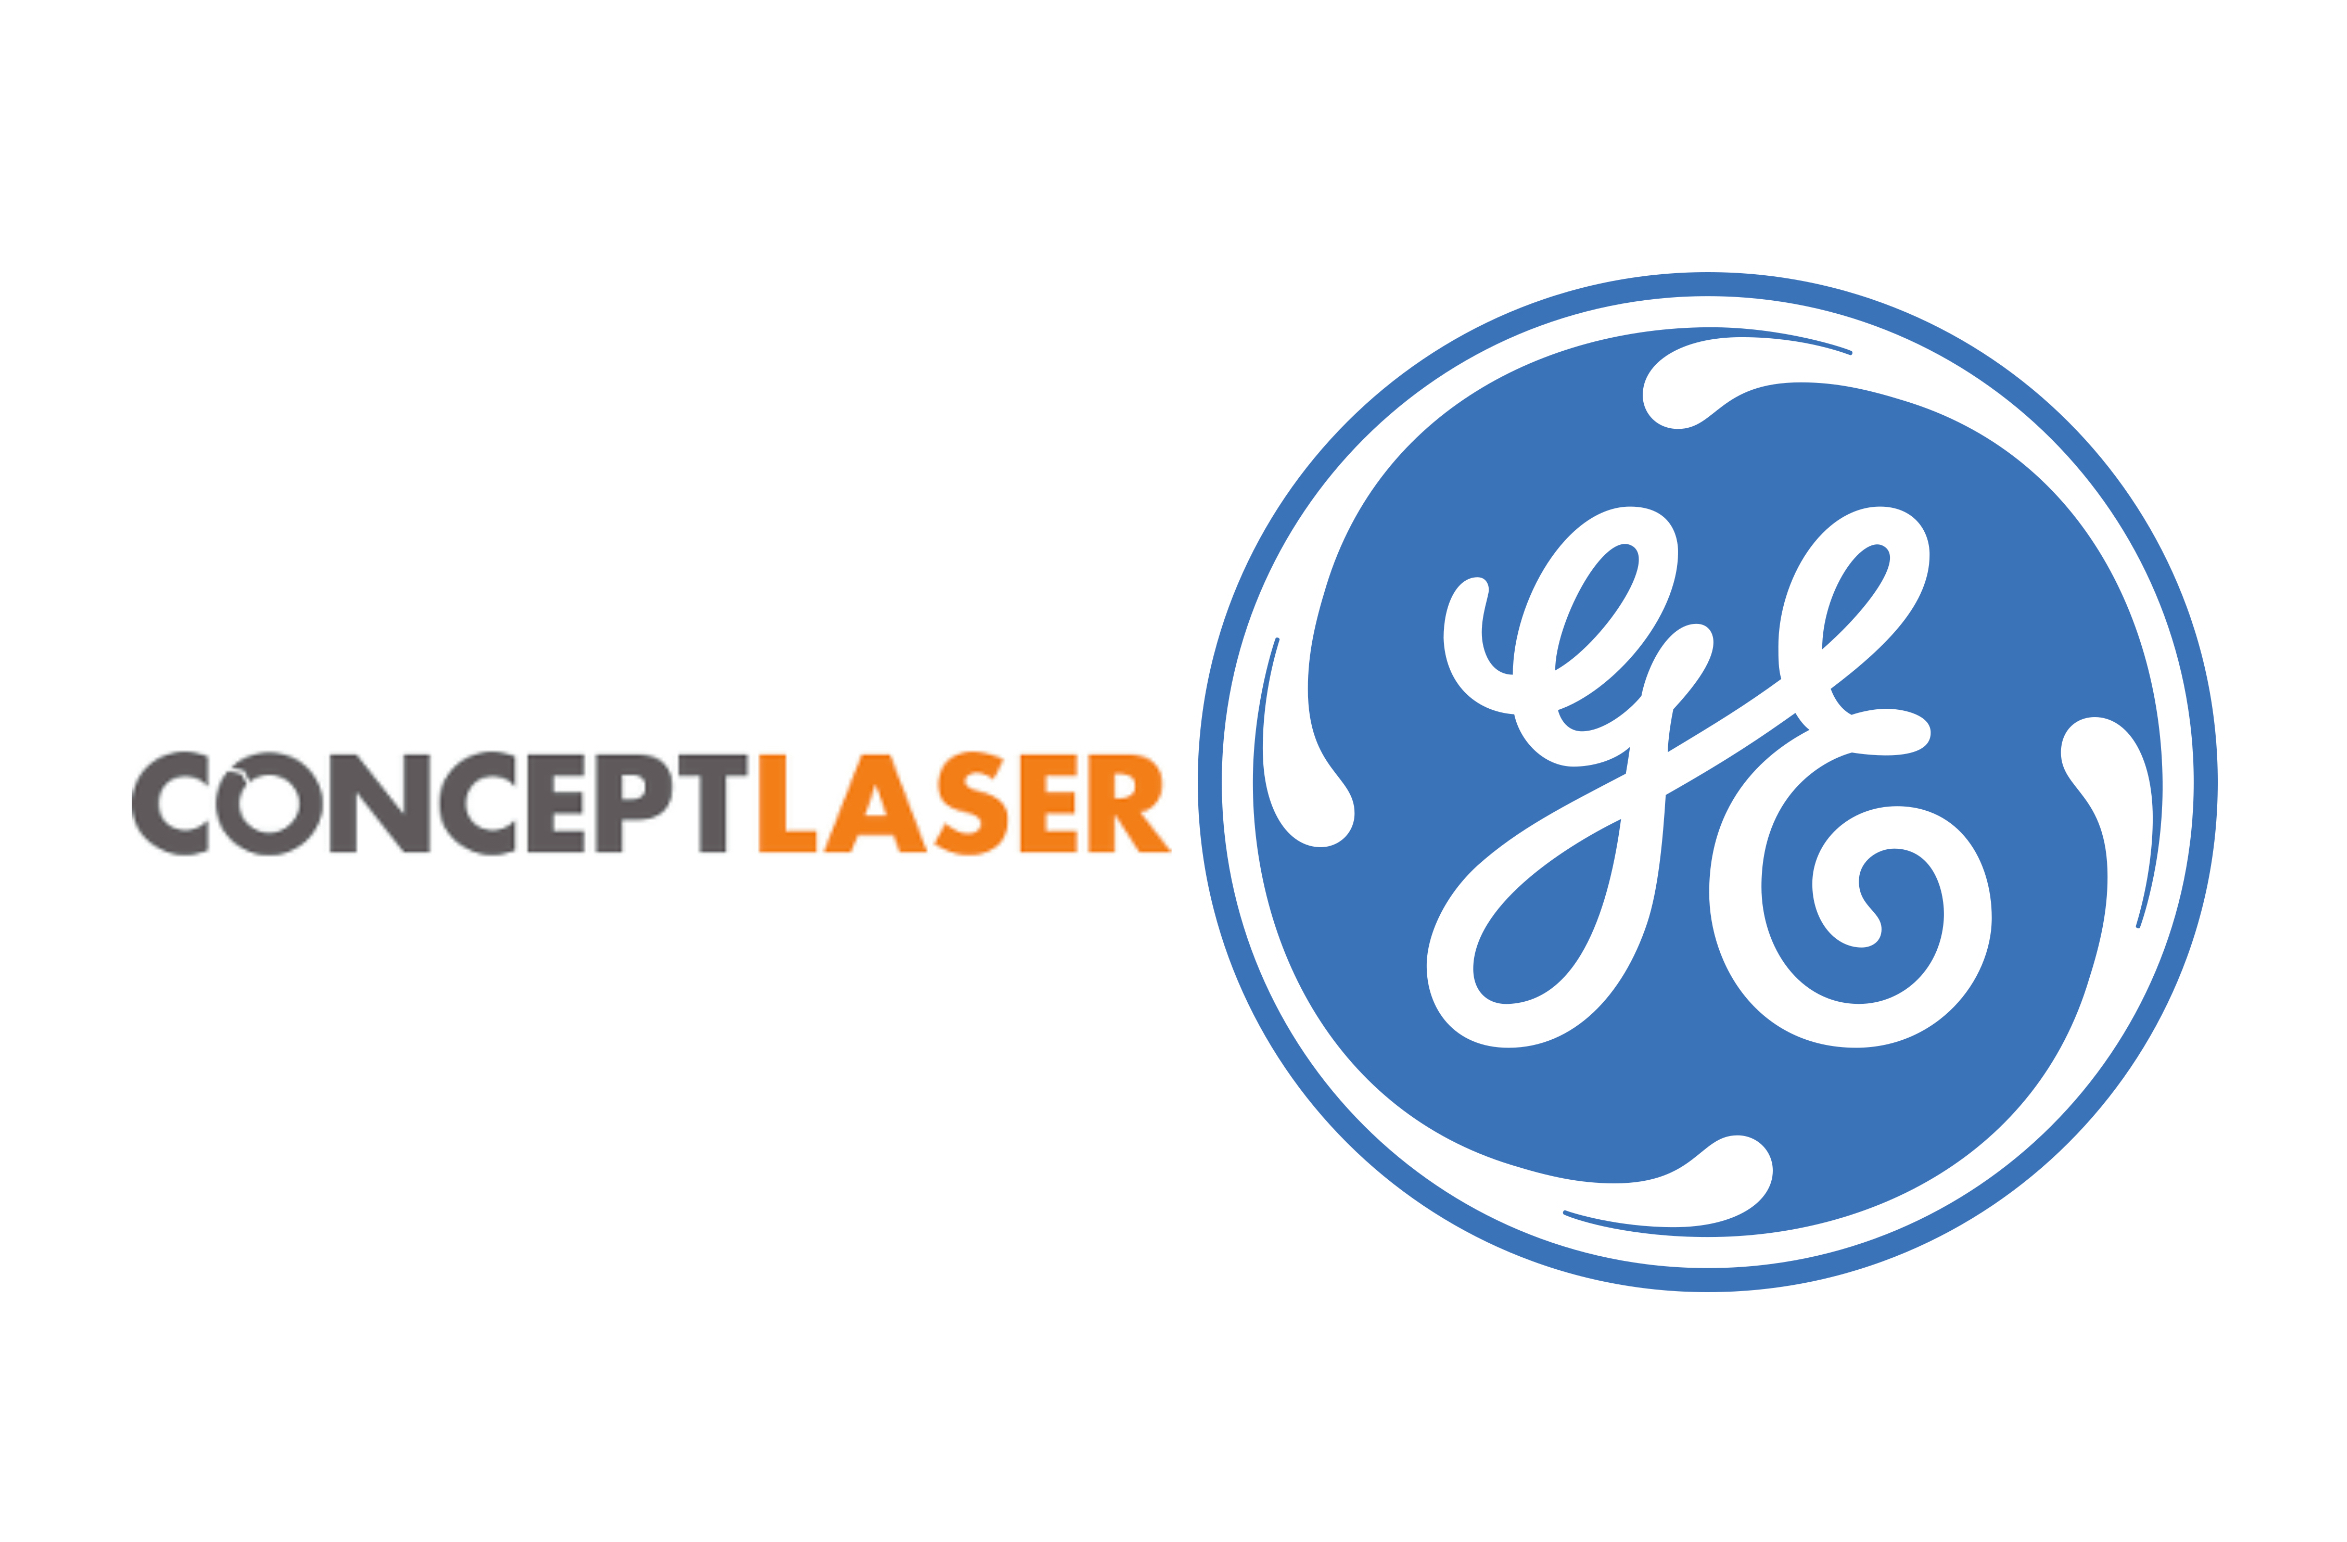 GE Buys Two 3D Metal Printer Firms, Just Not The Ones We Thought